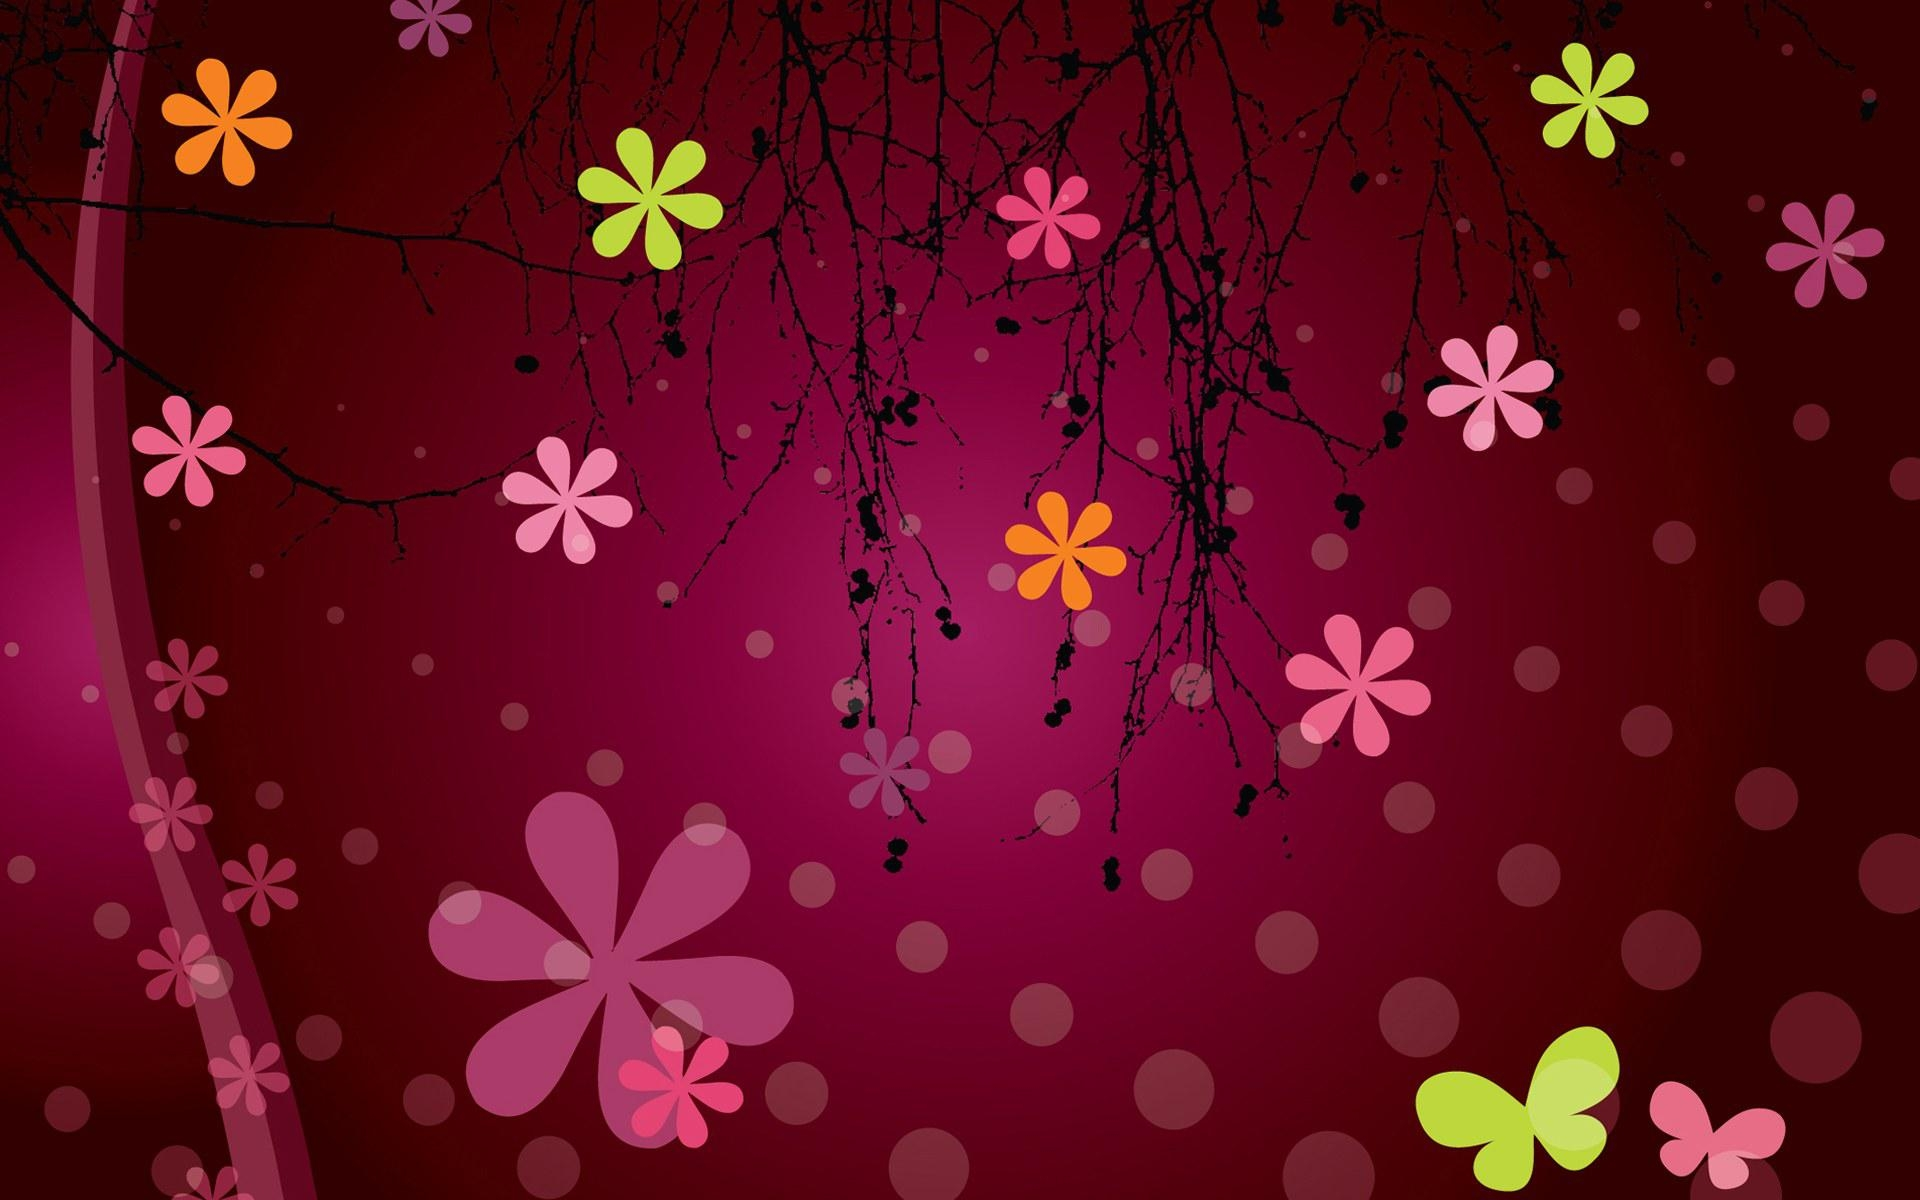 free-girly-for-desktop-Cute-Girly-Screensavers-hd-background-des-wallpaper-wpc9005224